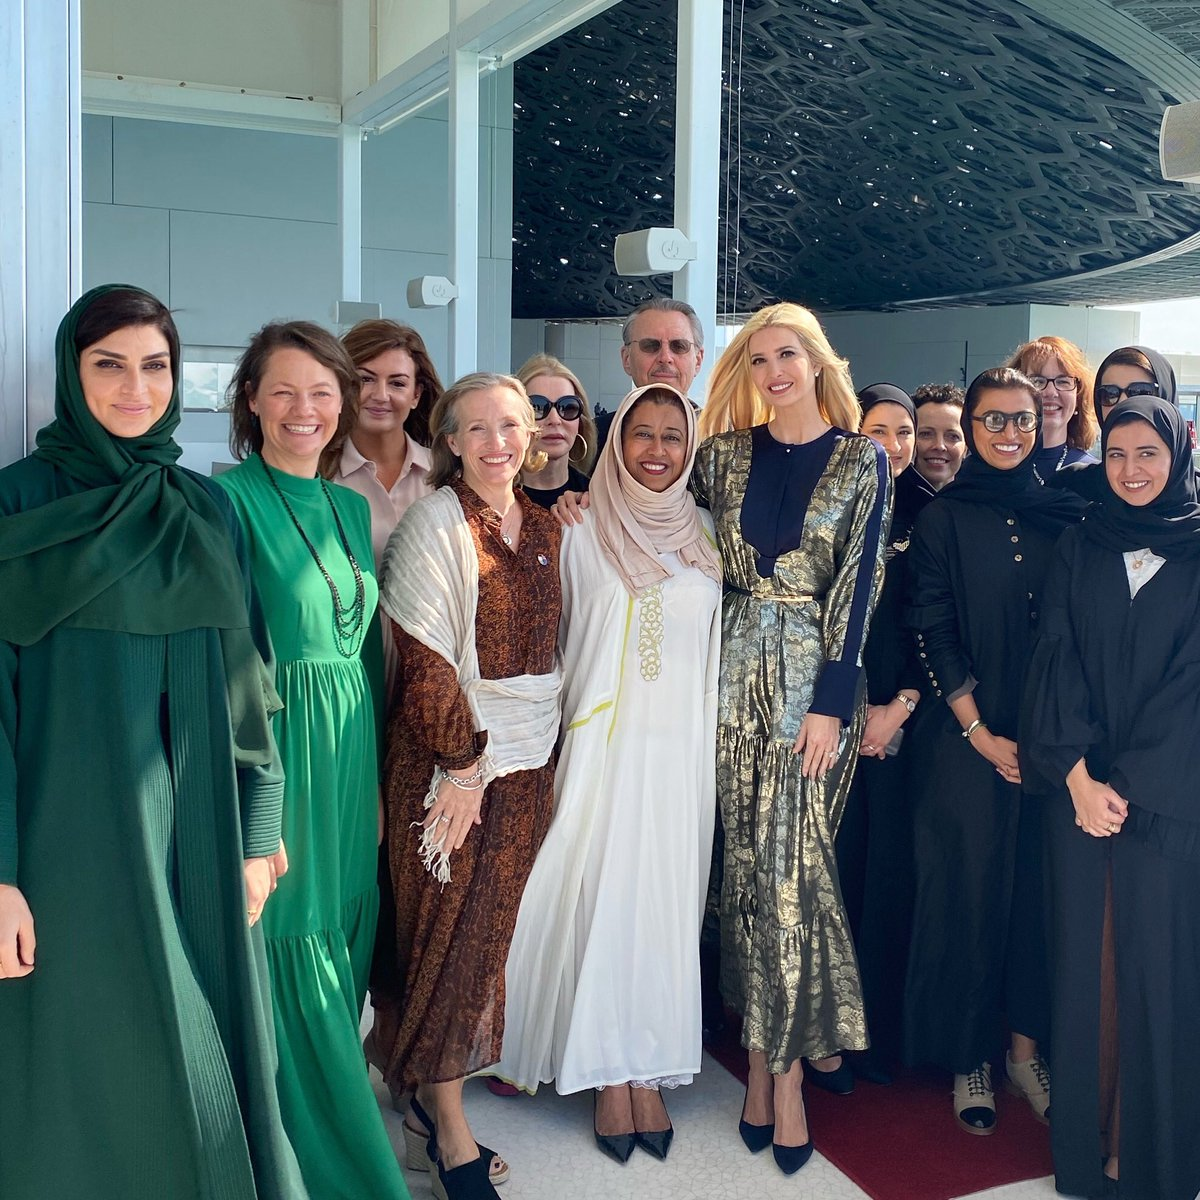 Today at the Louvre Museum Abu Dhabi I met with UAE female ministers & entrepreneurs   Together we seek to advance gender equity throughout the region. 🇺🇸🇦🇪 #WGDP